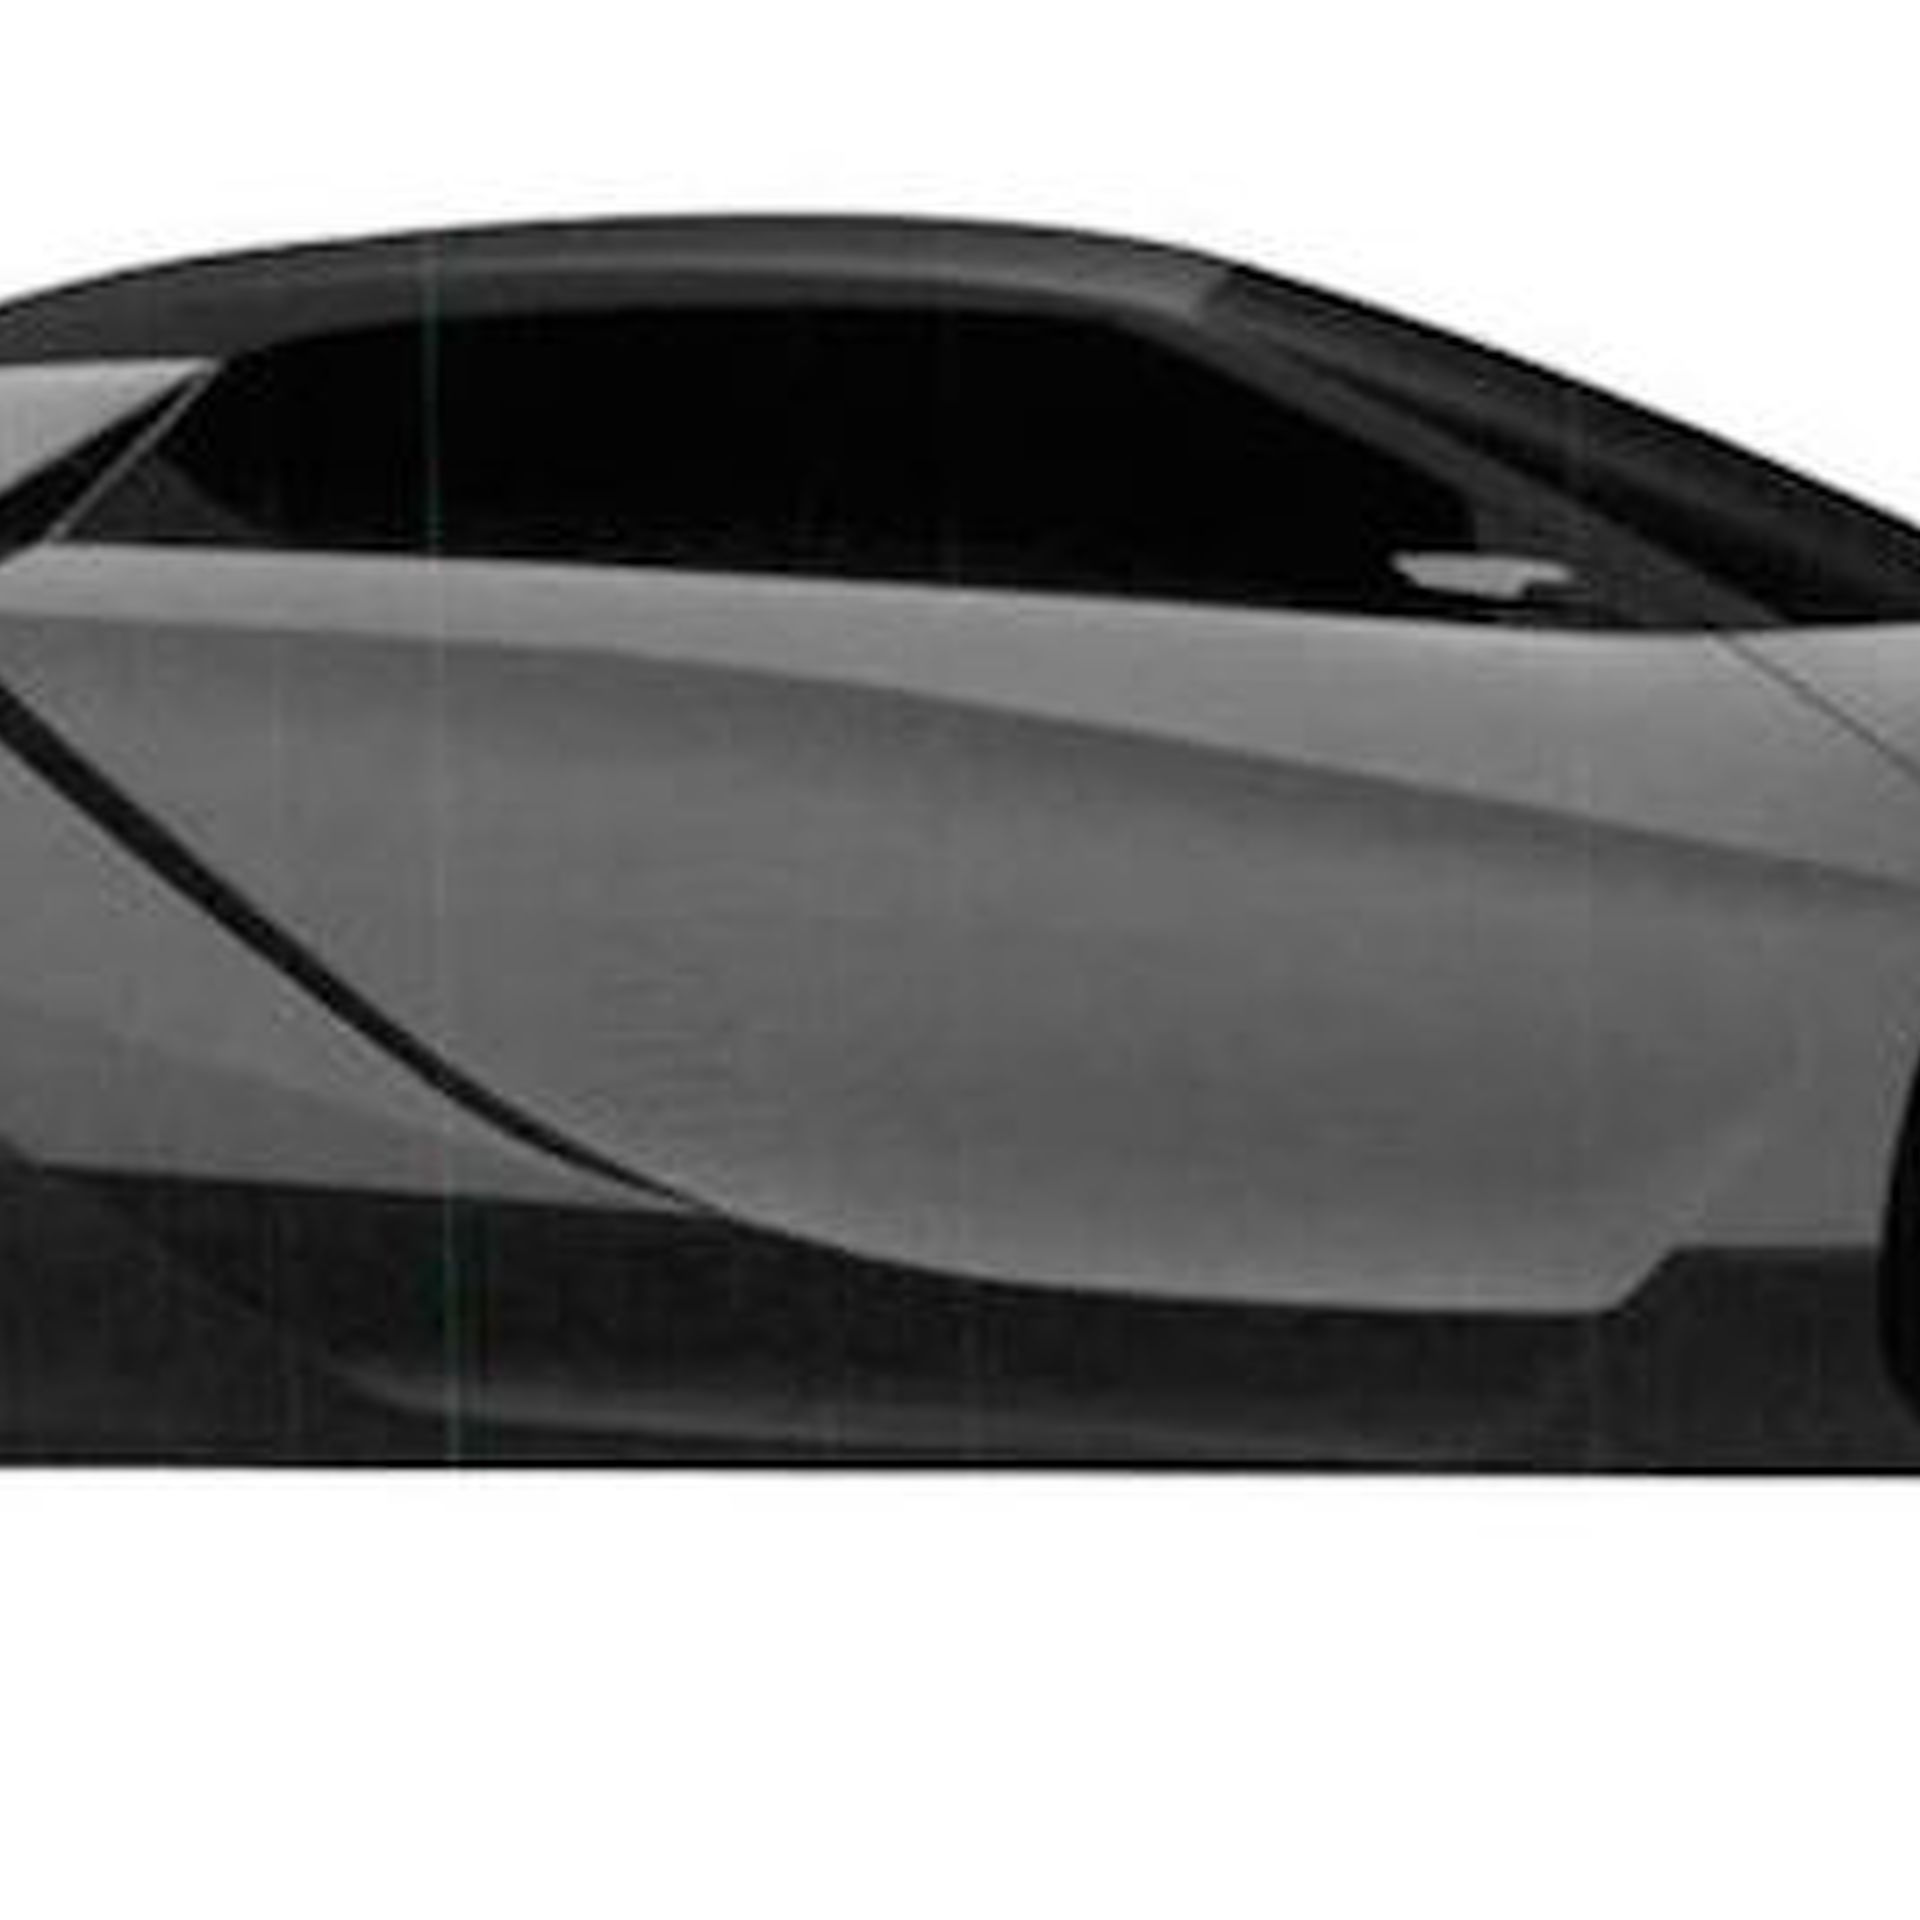 Is This the New Honda S2000?